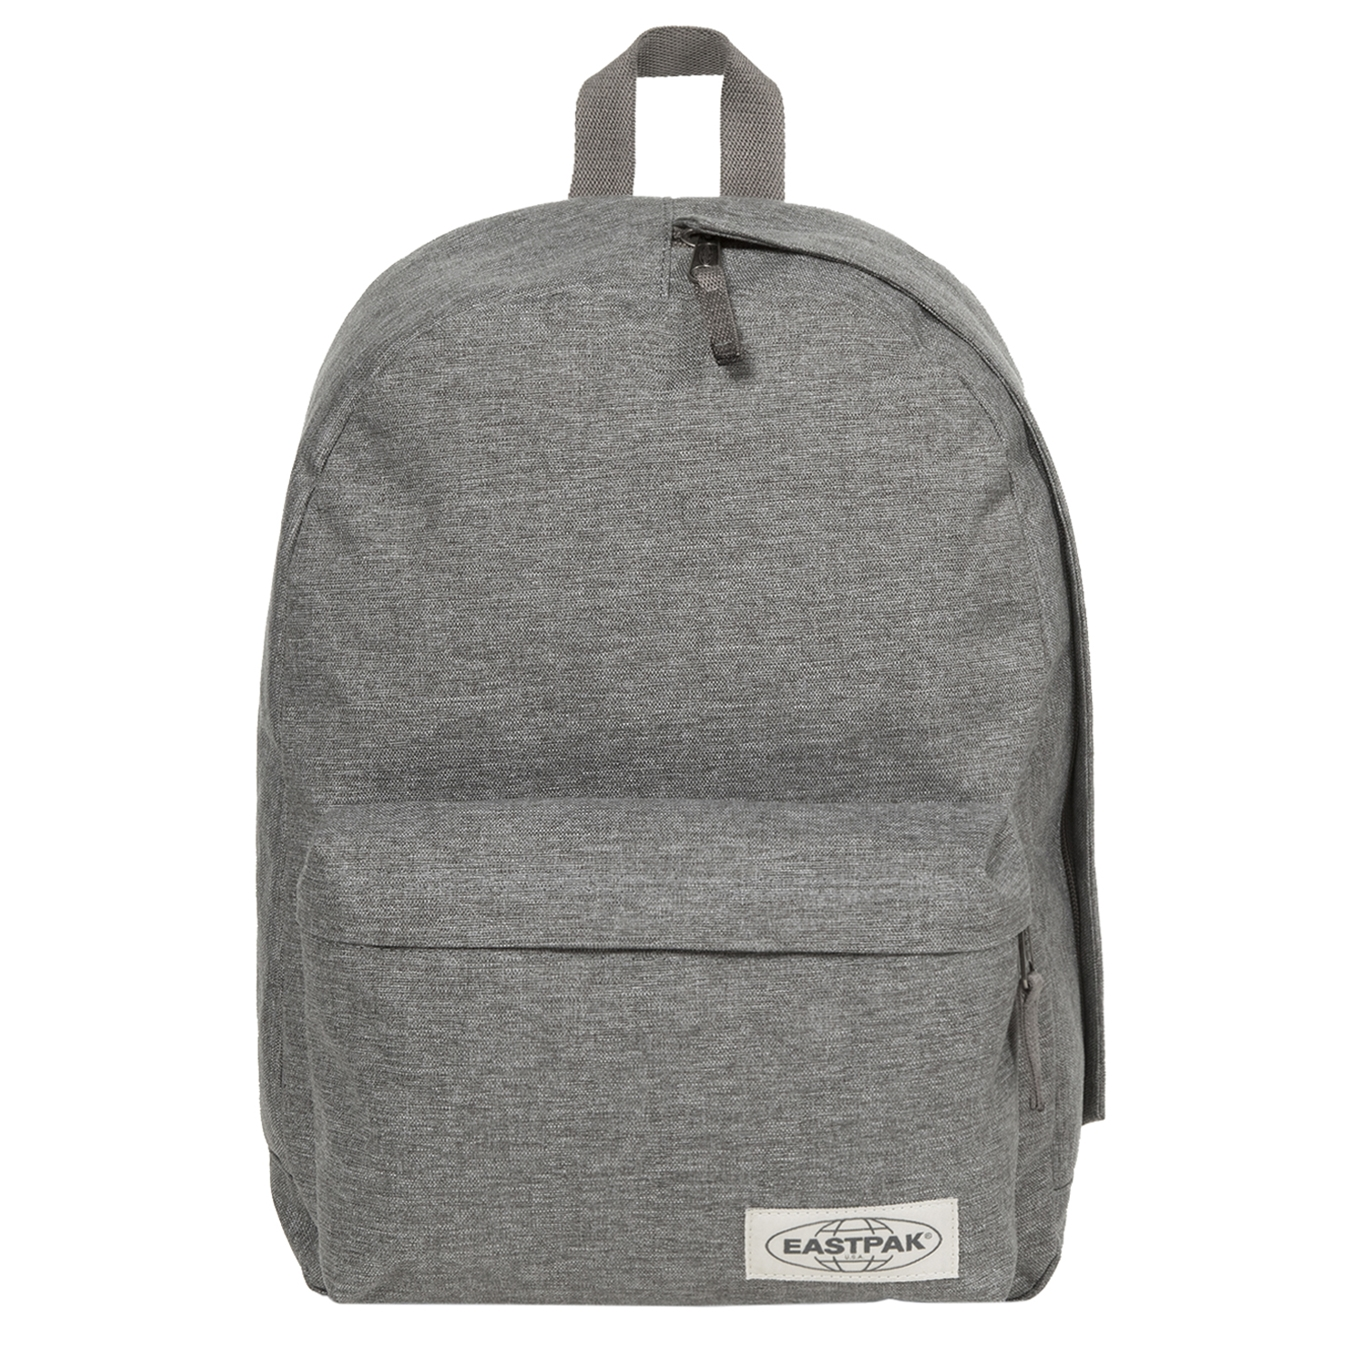 Eastpak Padded Sling'r Rugzak muted grey backpack